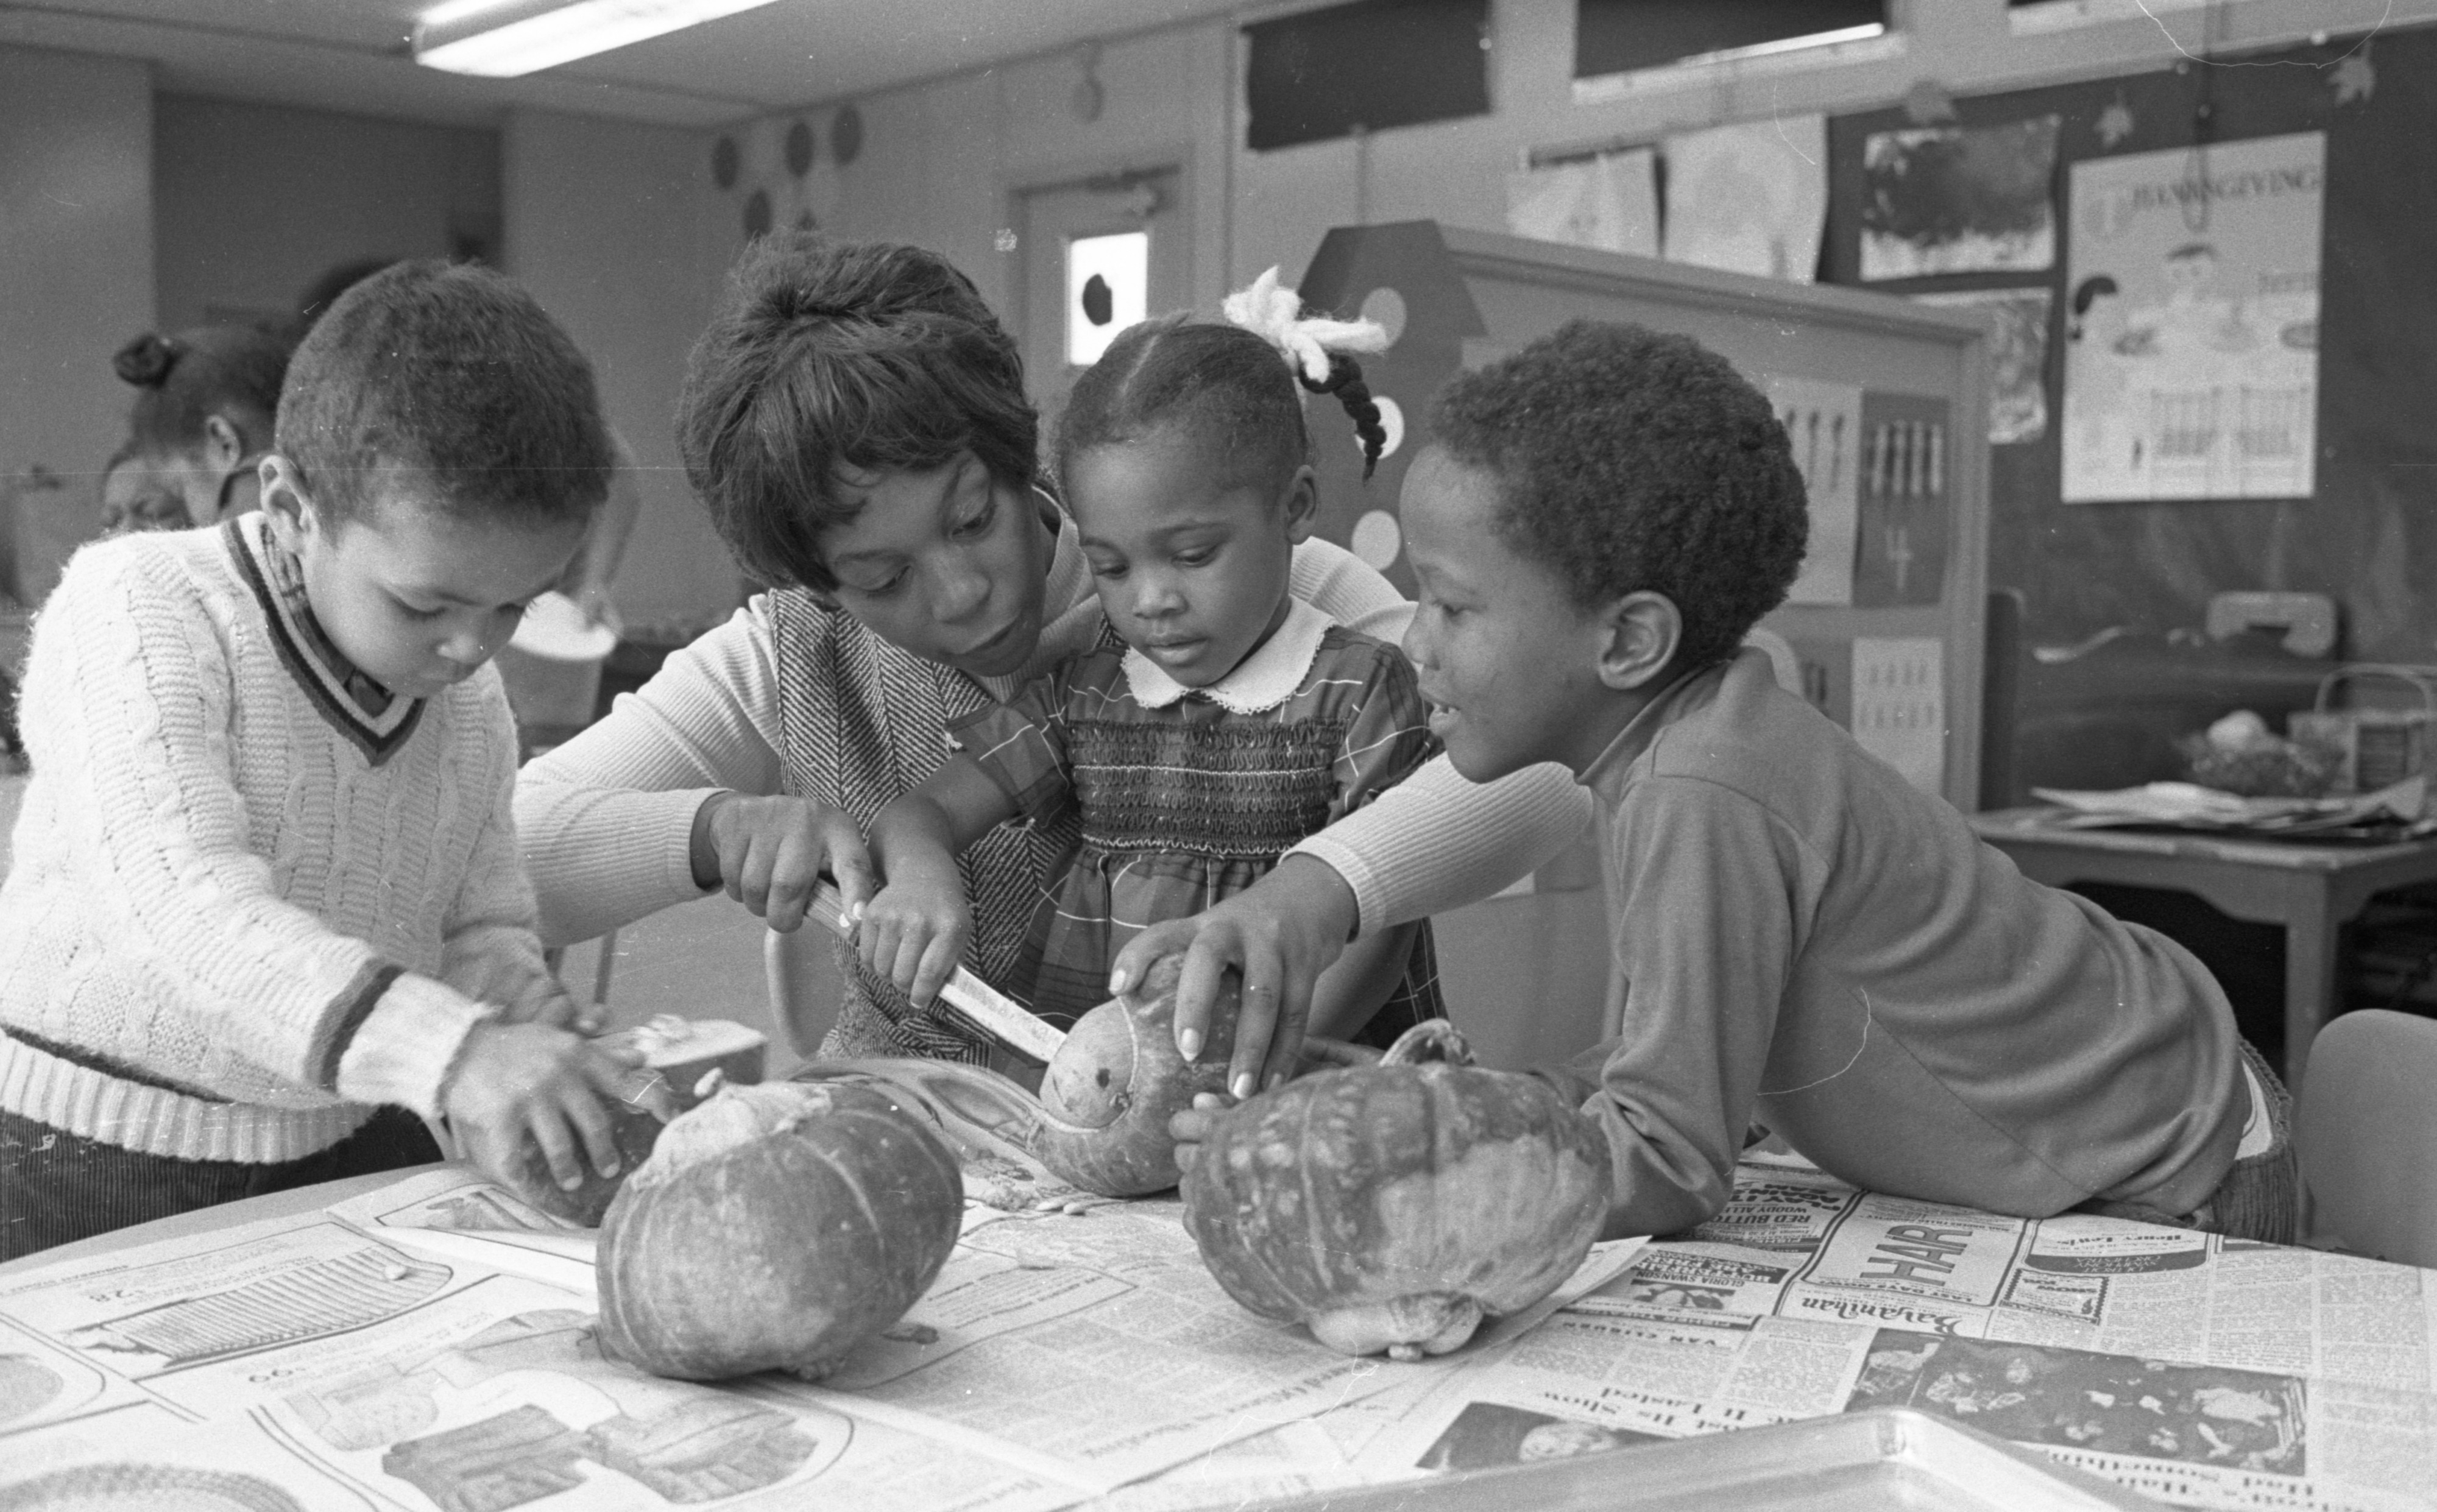 Earlene Hatley & Mack School Preschoolers Prepare Squash For A Thanksgiving Dinner, November 1970 image